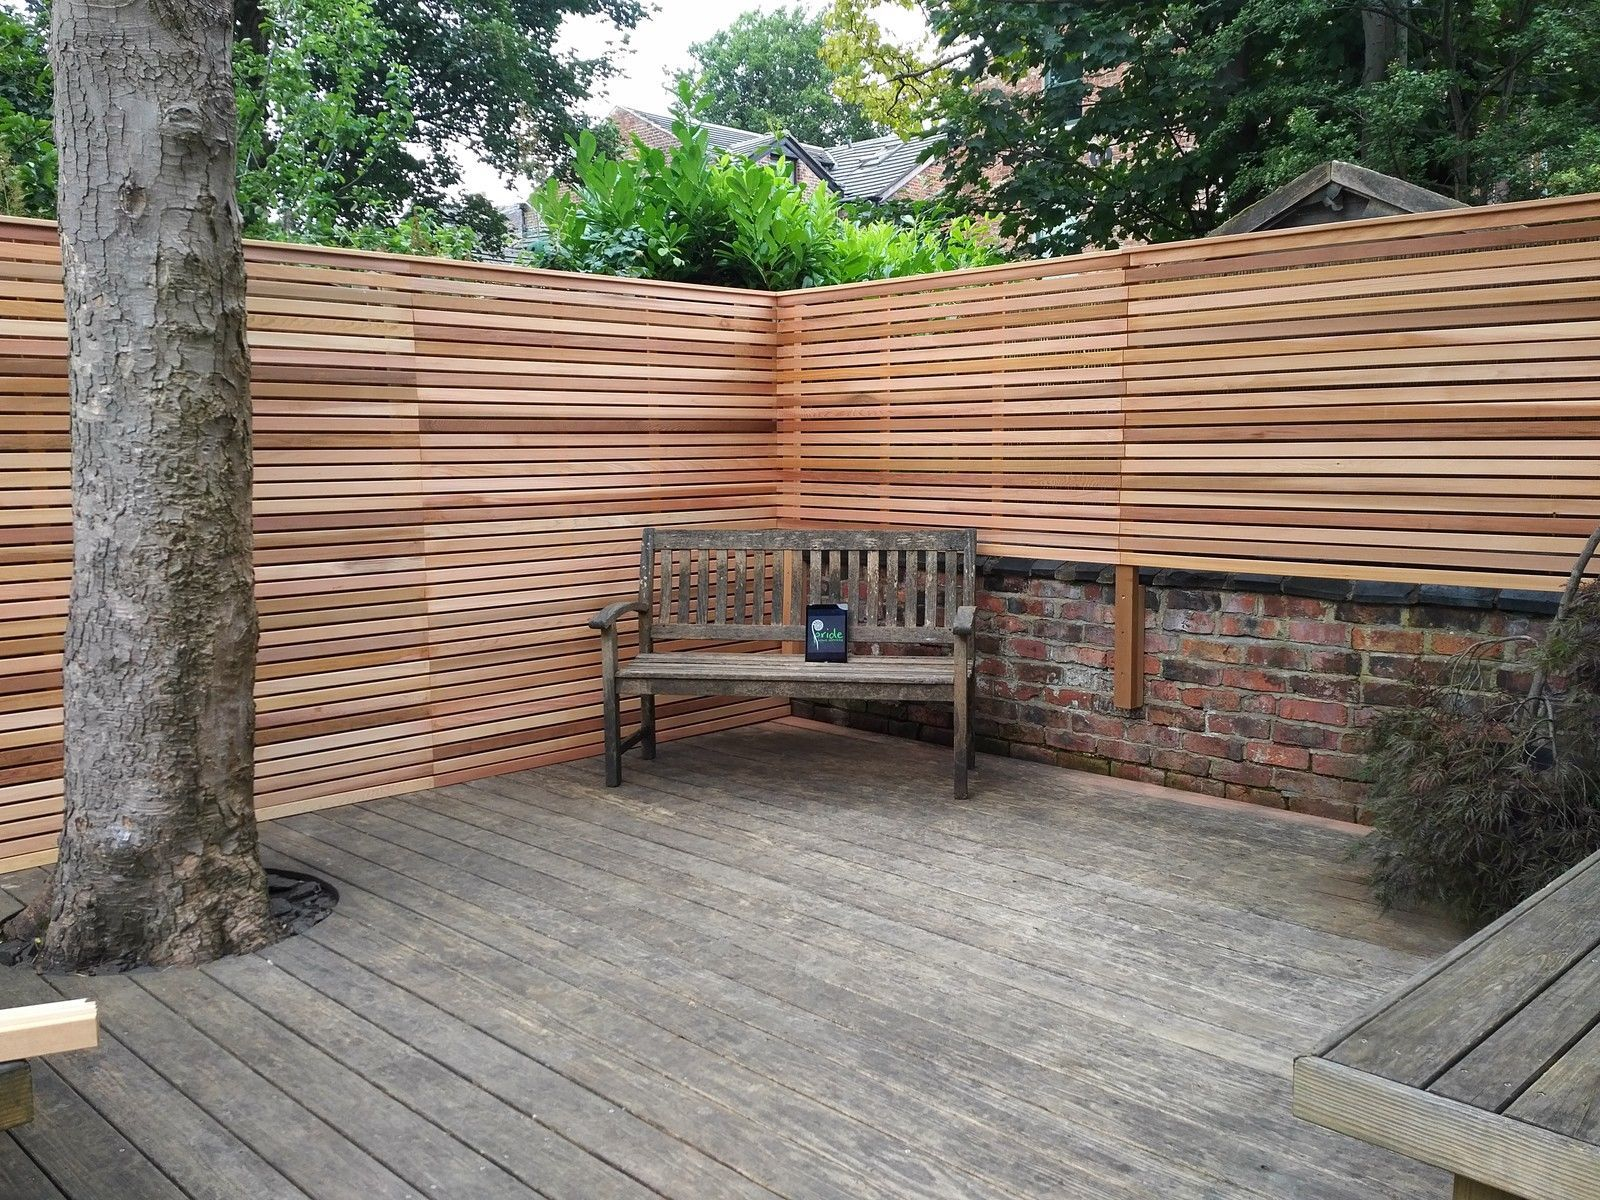 Contemporary screen fencing cedar fence panel horizontal fencing wide contemporary horizontal slatted panel built using western red cedar contemporary slatted screen fence panel built using premium finished western red baanklon Gallery